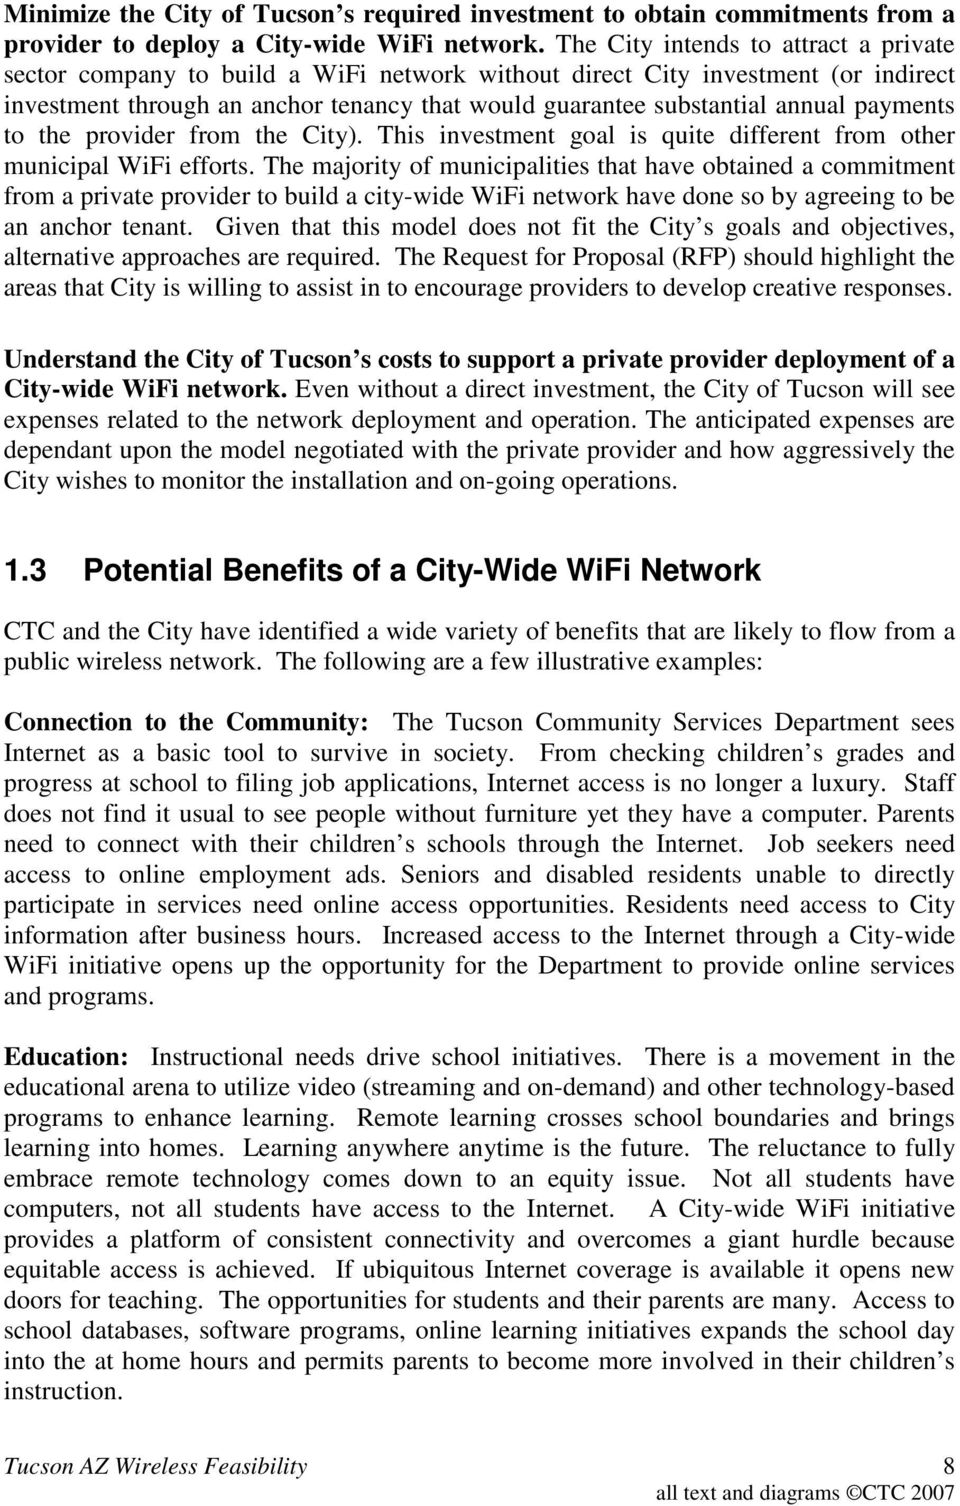 payments to the provider from the City). This investment goal is quite different from other municipal WiFi efforts.